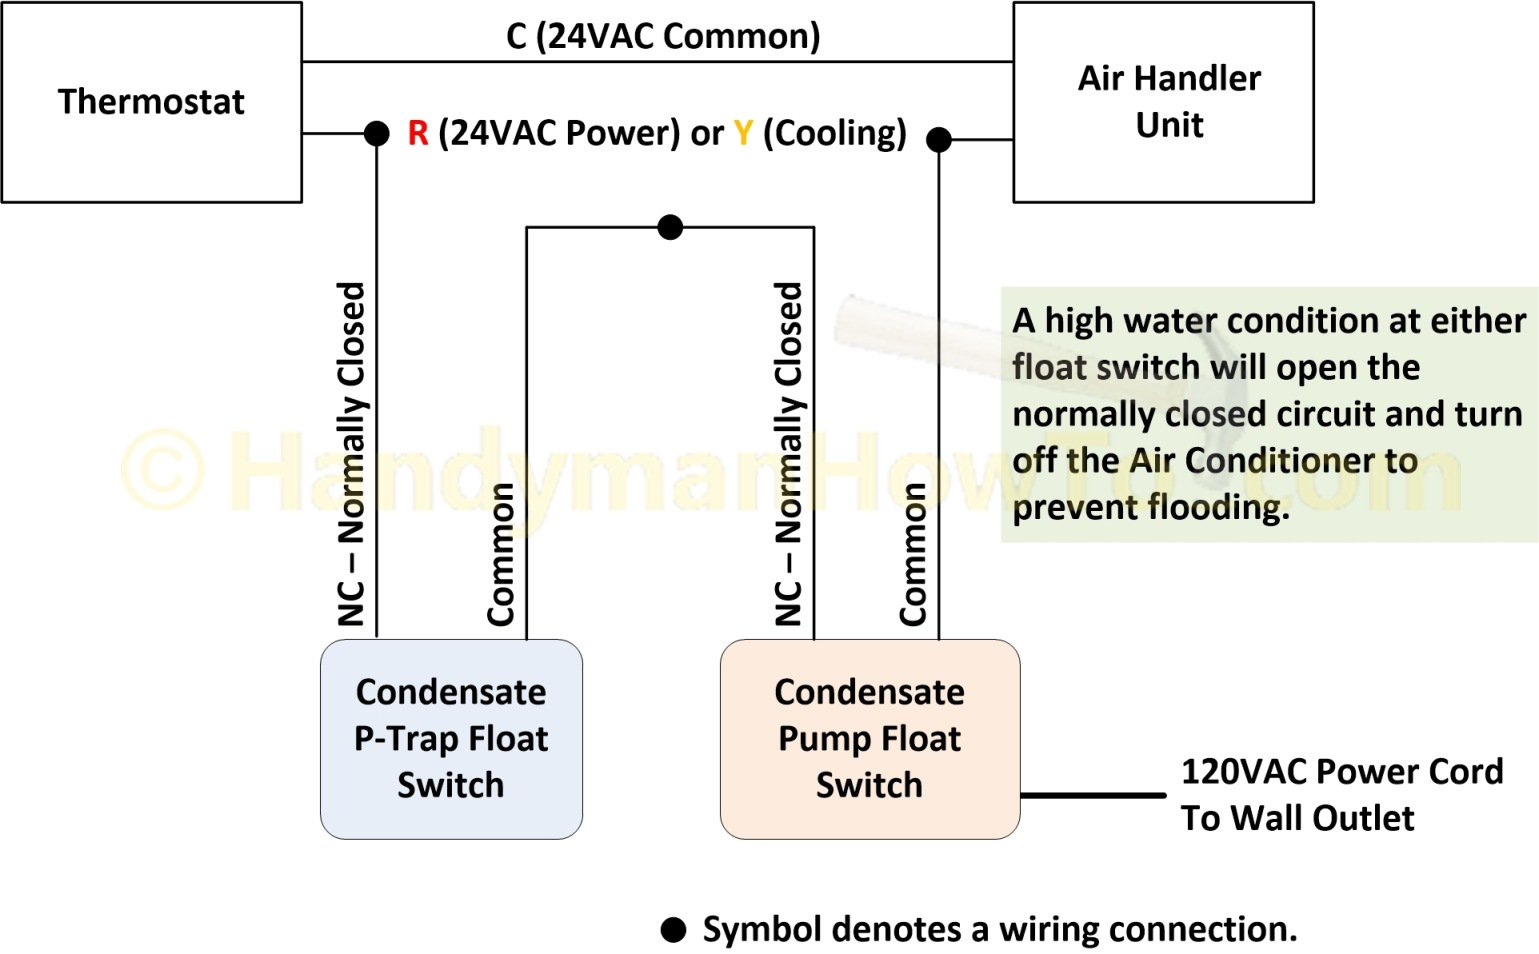 septic pump float switch wiring diagram Download-Septic Tank Float Switch  Wiring Diagram Best How. DOWNLOAD. Wiring Diagram ...